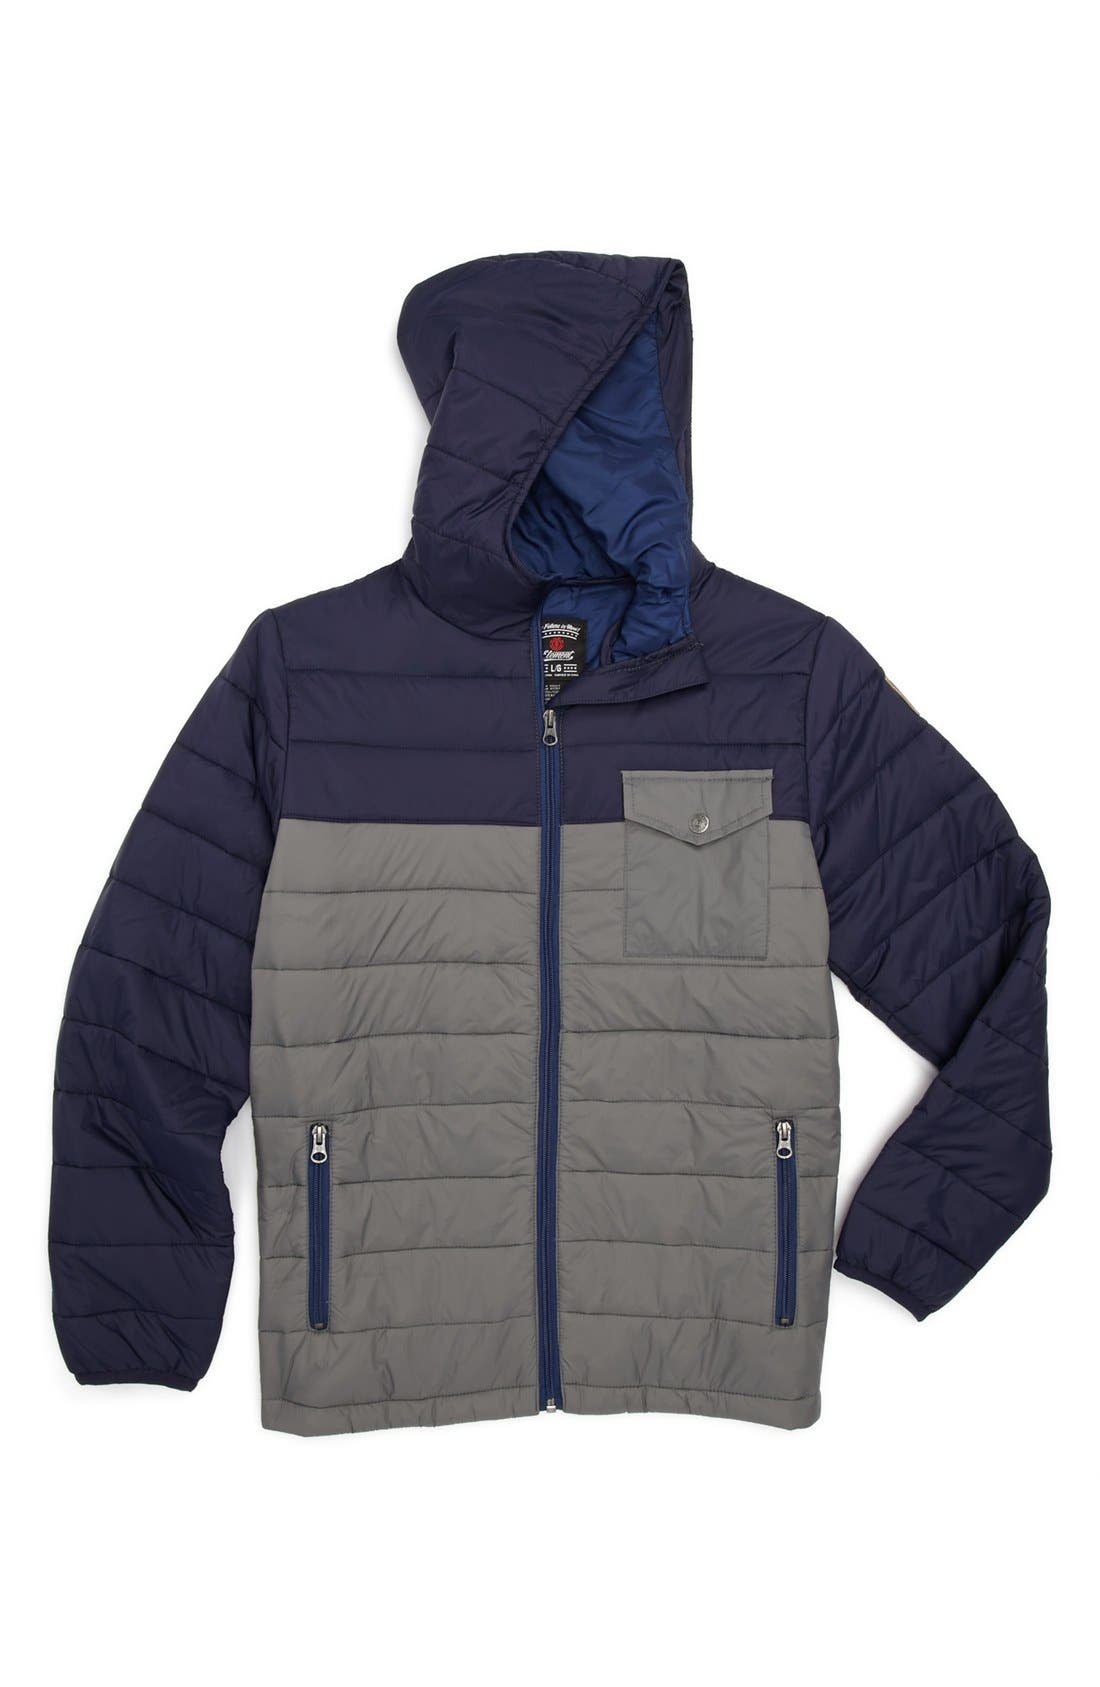 Alternate Image 1 Selected - Element 'Foxnum' Quilted Jacket (Big Boys)